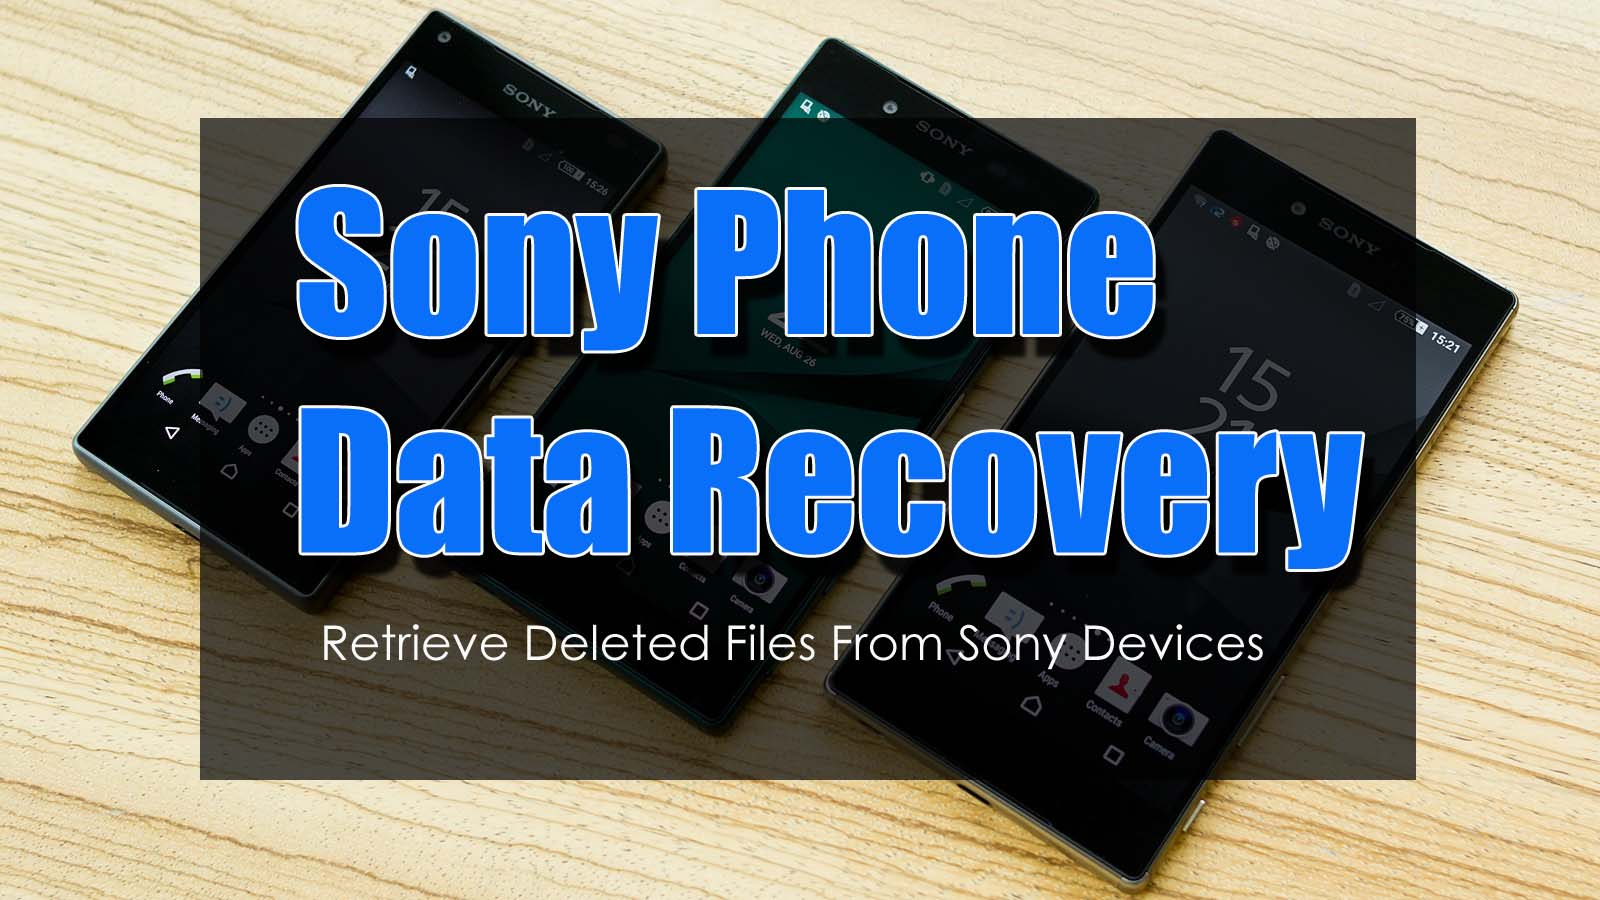 Sony Phone Data Recovery – Retrieve Deleted Files From Sony Devices